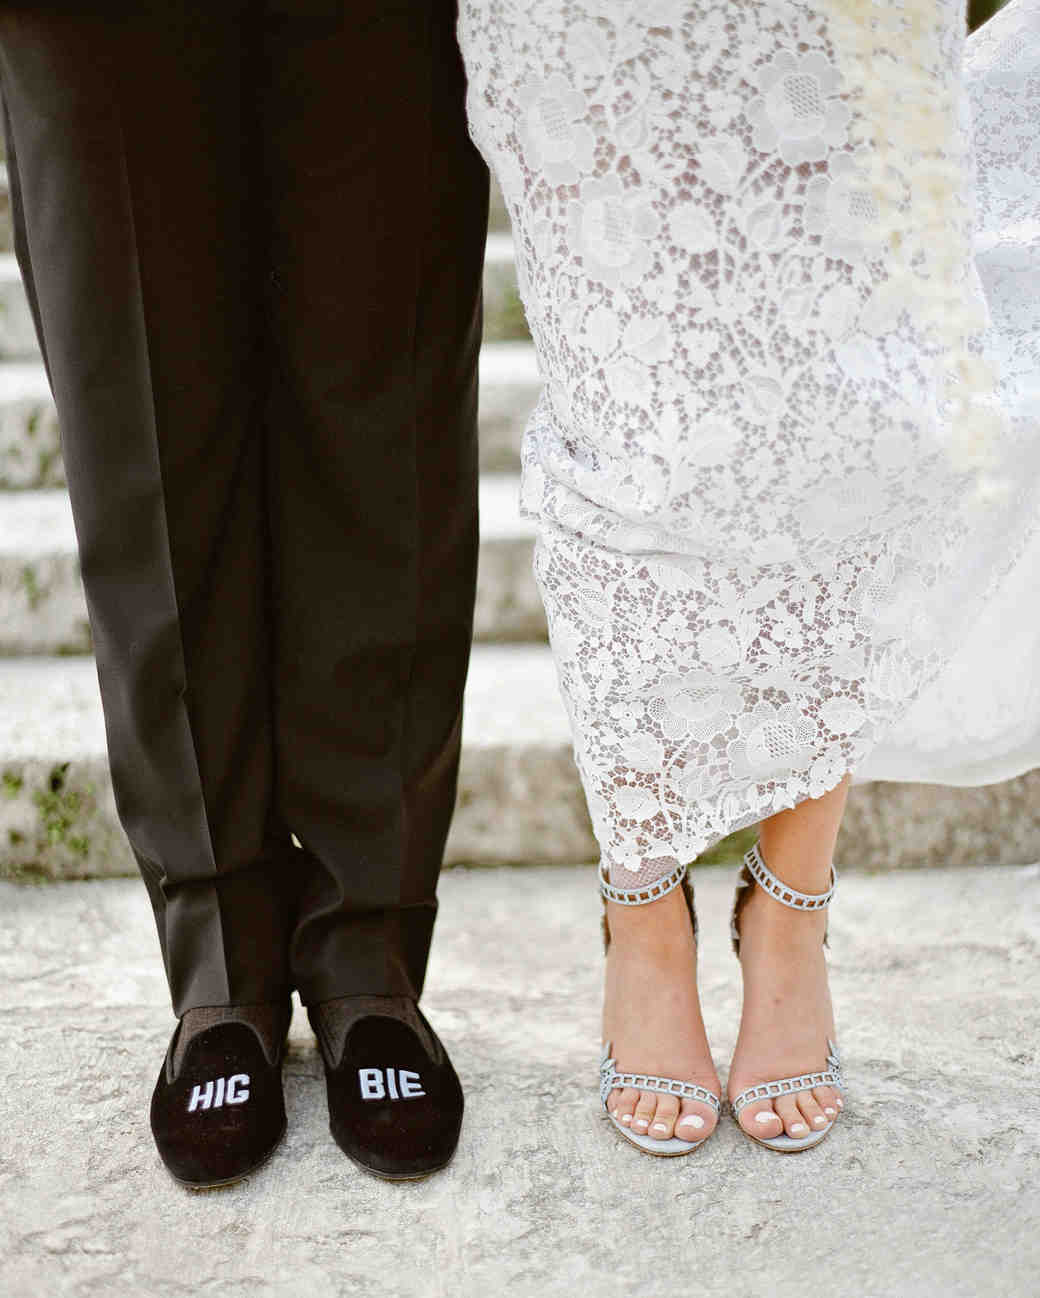 natalie jamey wedding shoes closeup